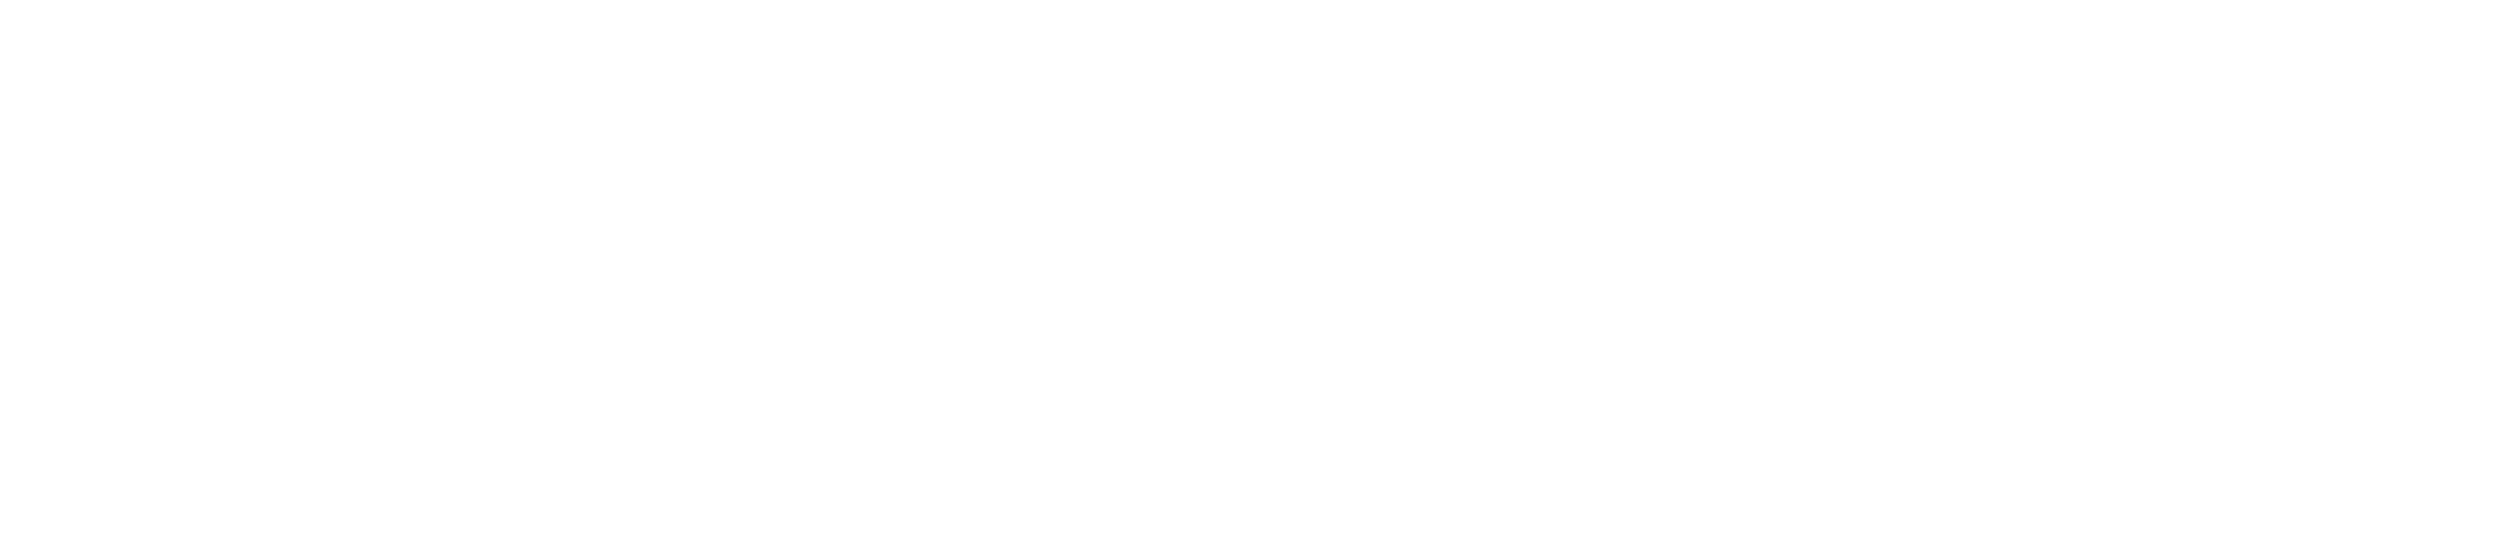 white_logo_2_lines-01.png